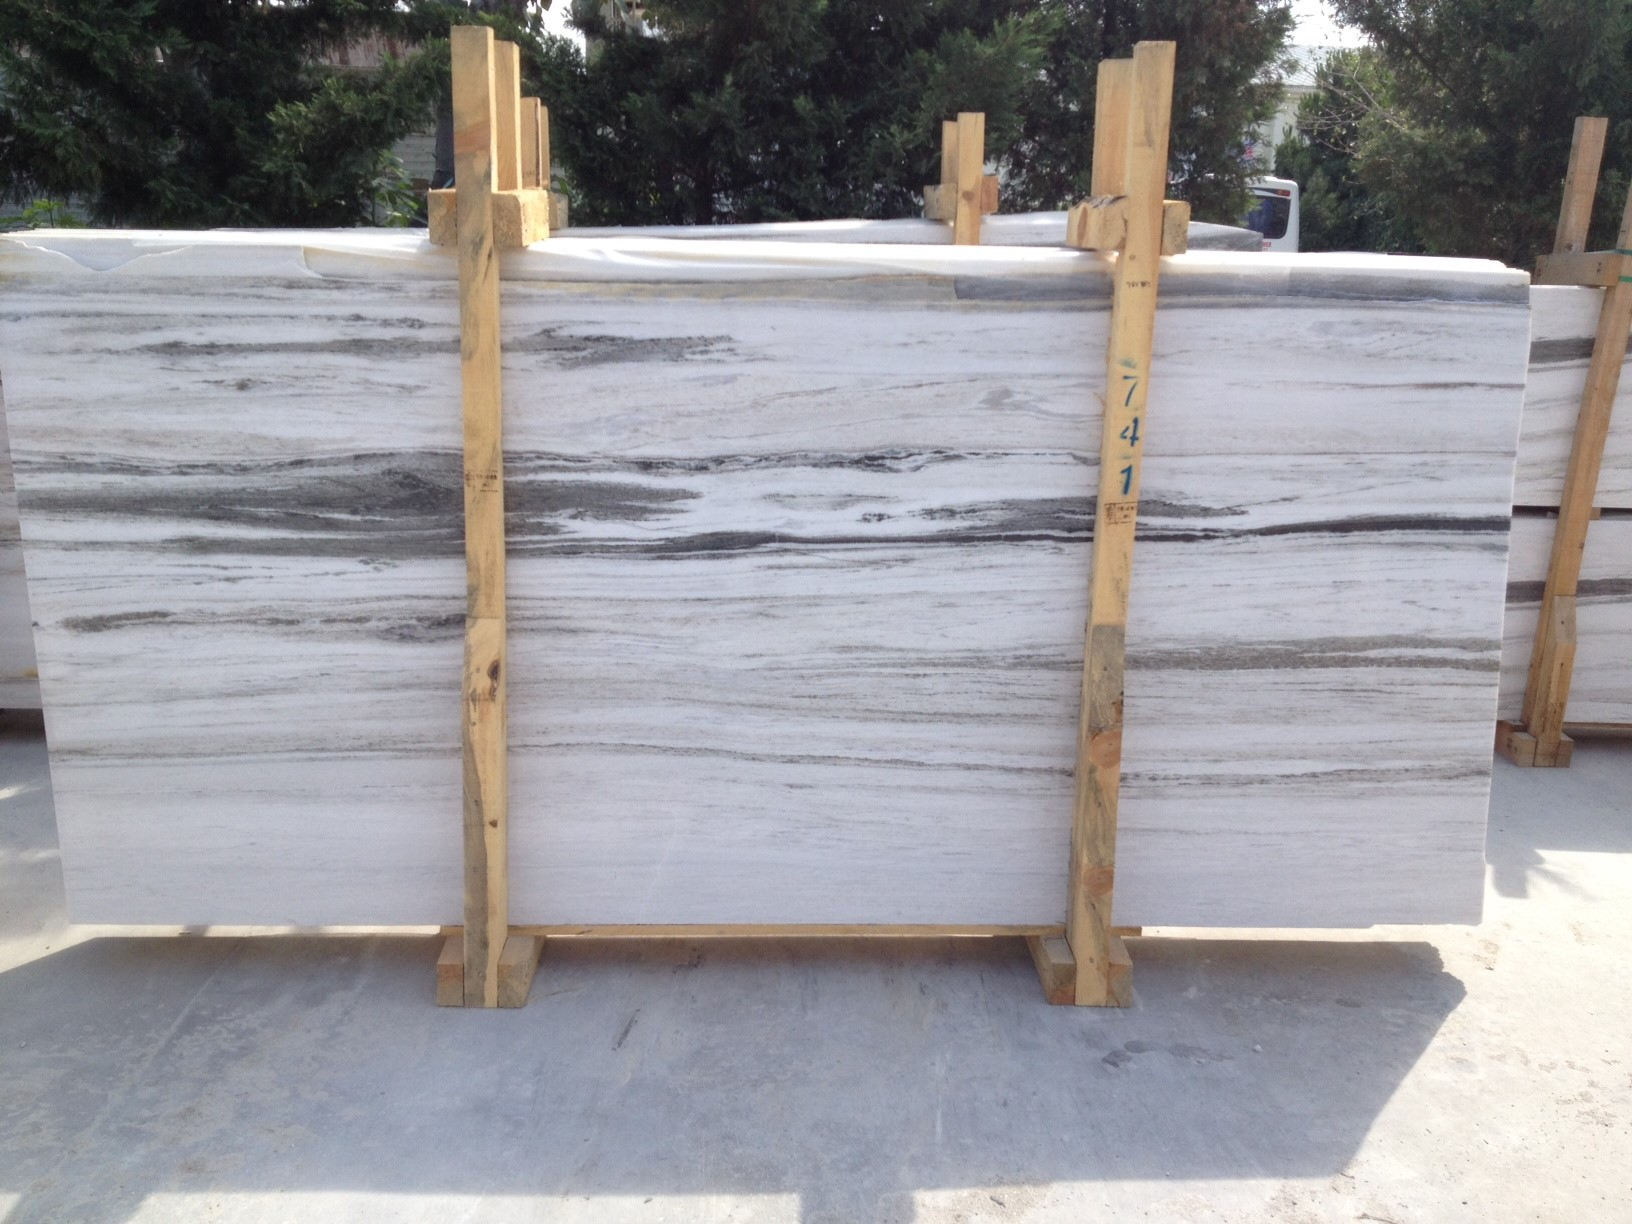 Calacatta White Marble Tiles and Slabs